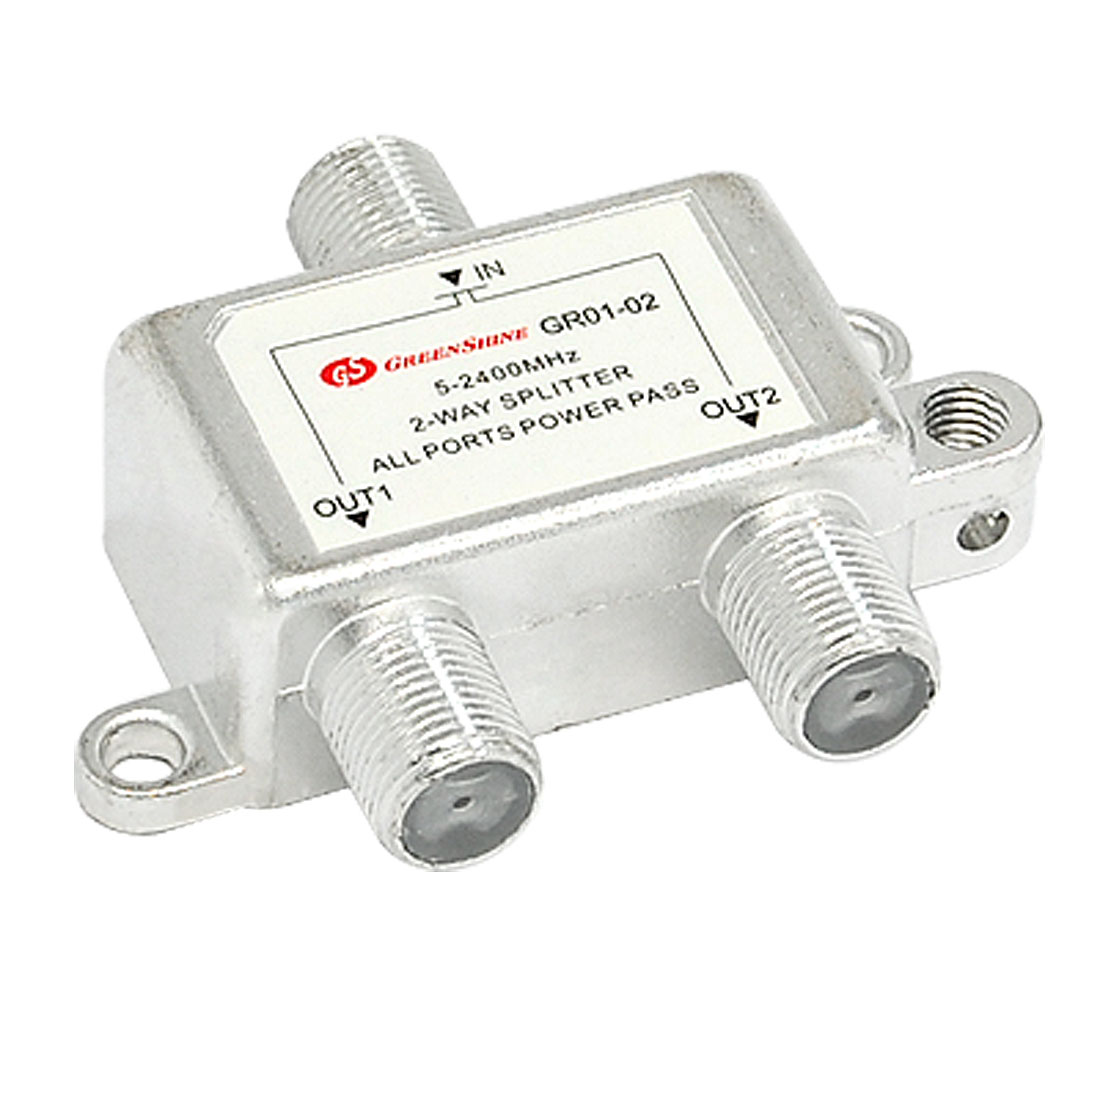 2 Way TV RF Coaxial Cable Splitter for CATV Signal